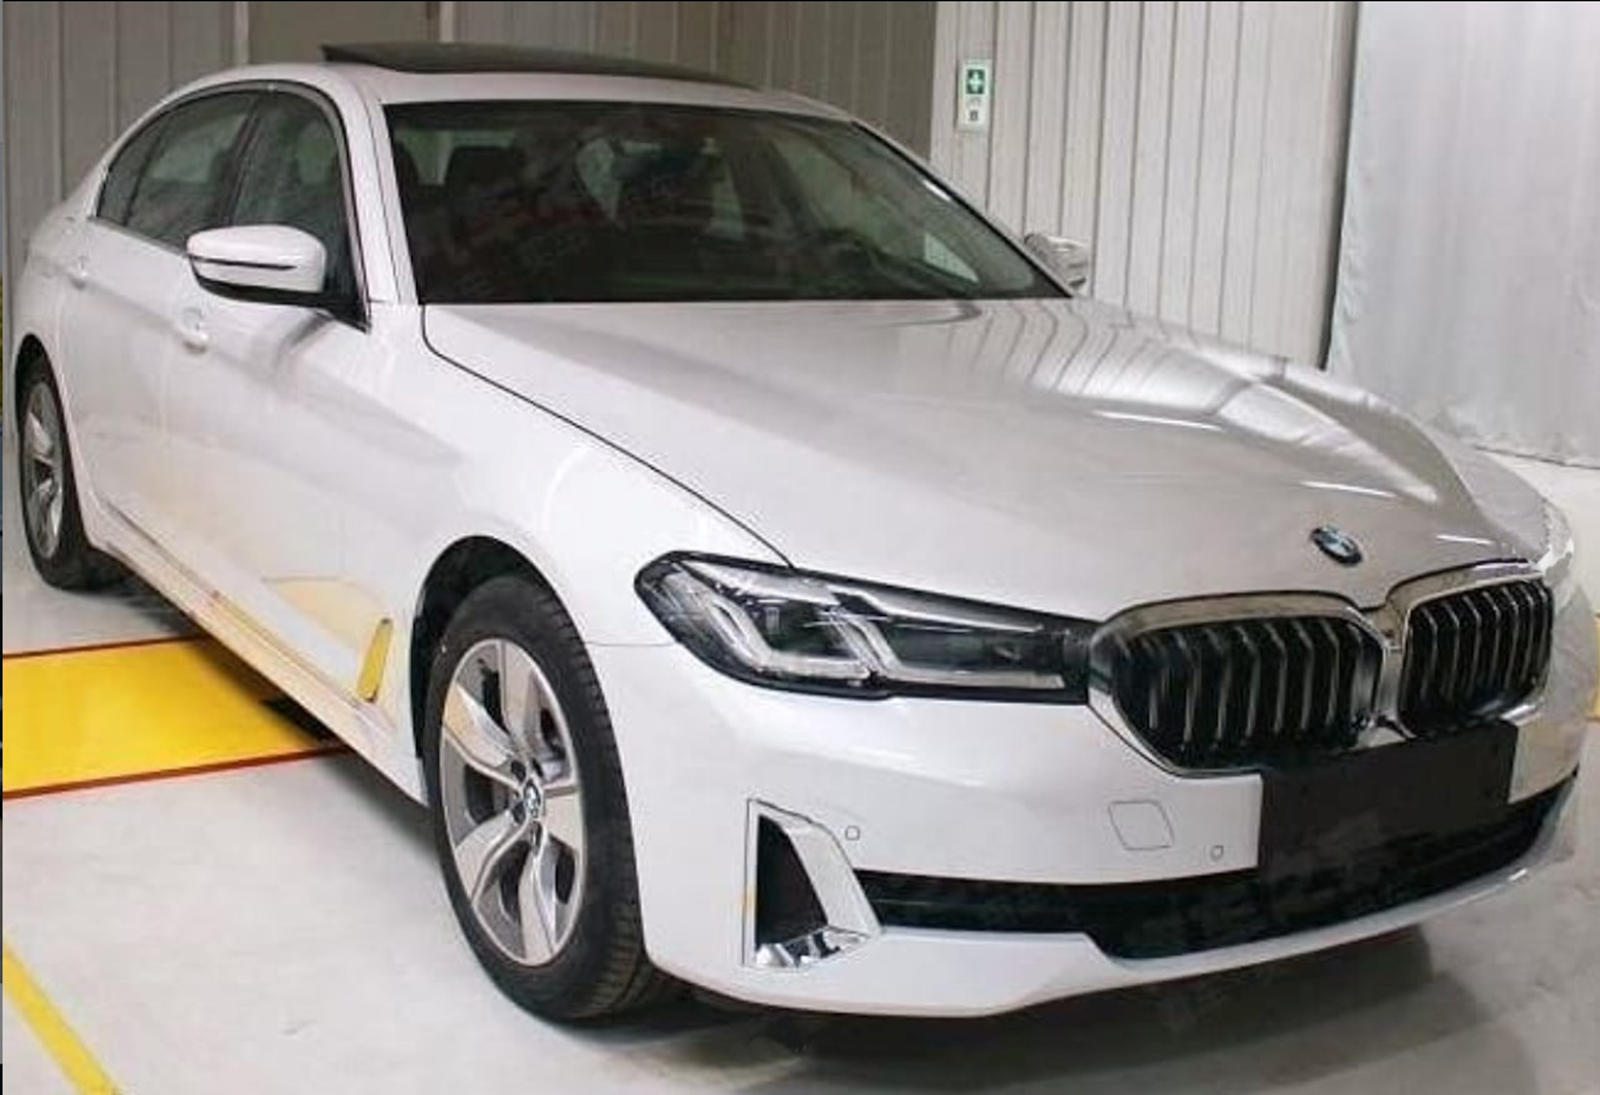 Leaked New Bmw 5 Series Shown In Detail Carbuzz